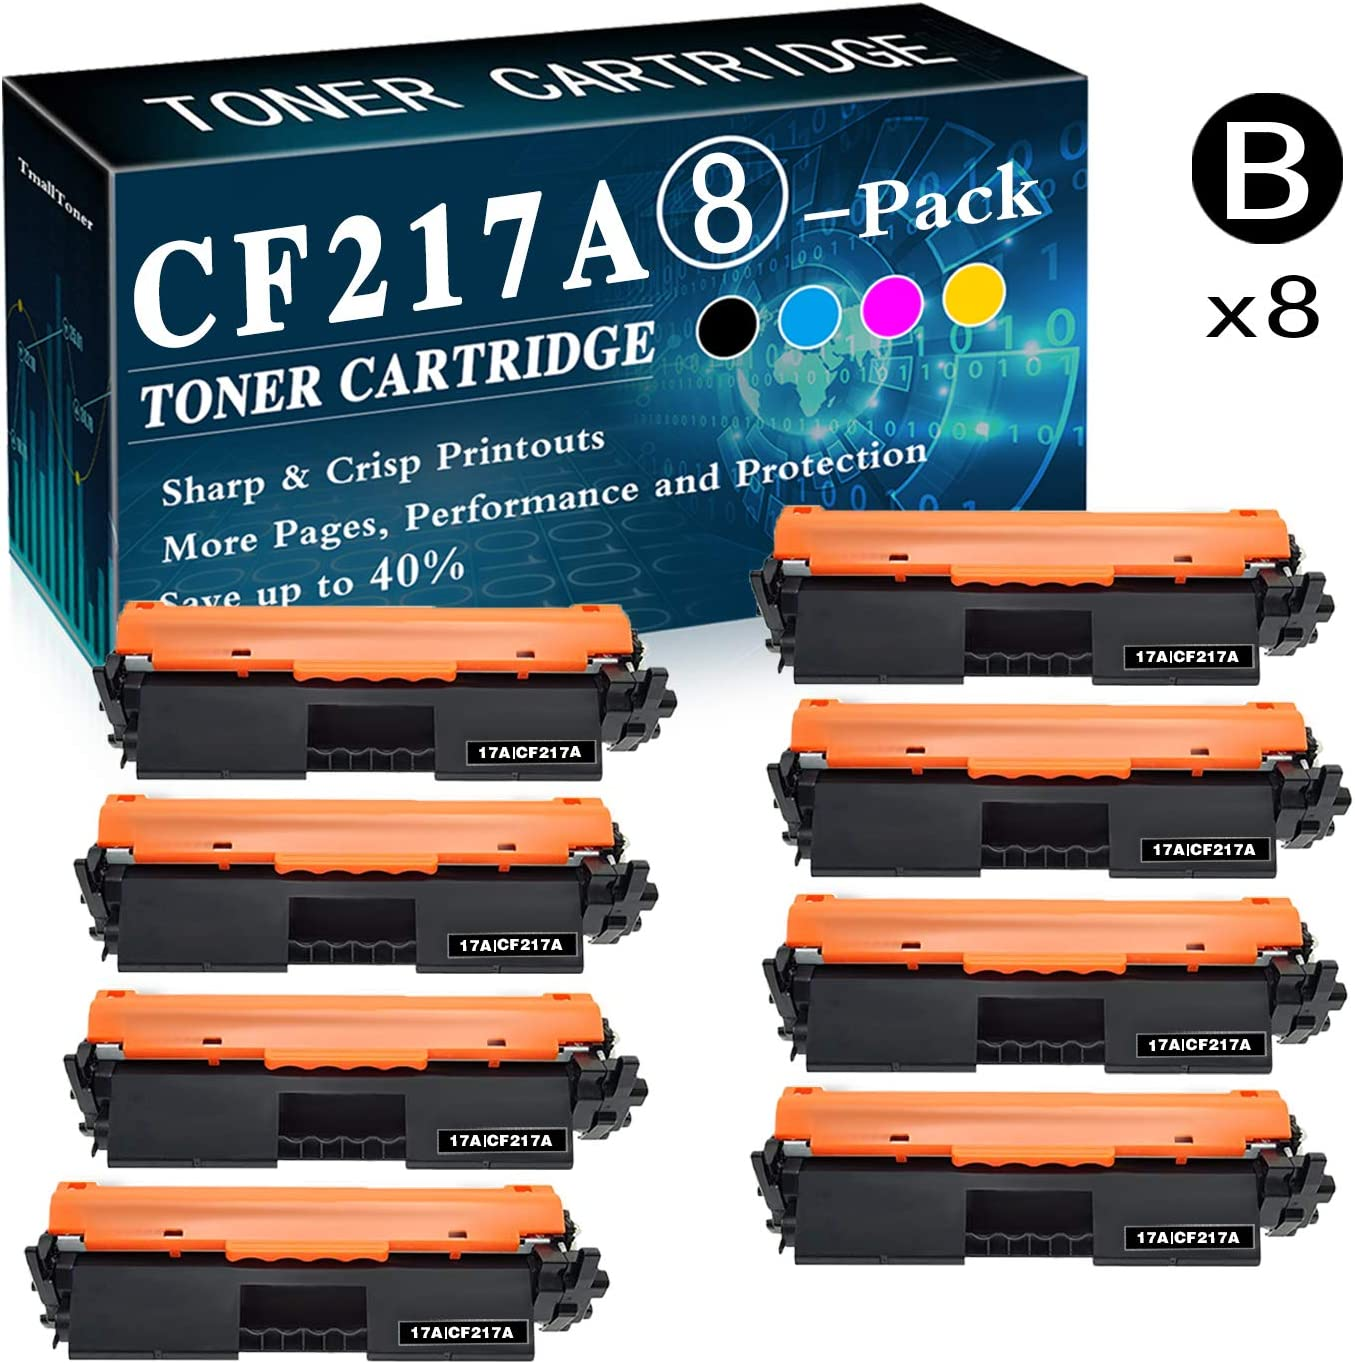 CF217A Toner Cartridge Replacement for HP Laserjet M130a M130nw M130fn M130fw M102a M102w Printer Printer,by TmallToner 8-Pack 17A